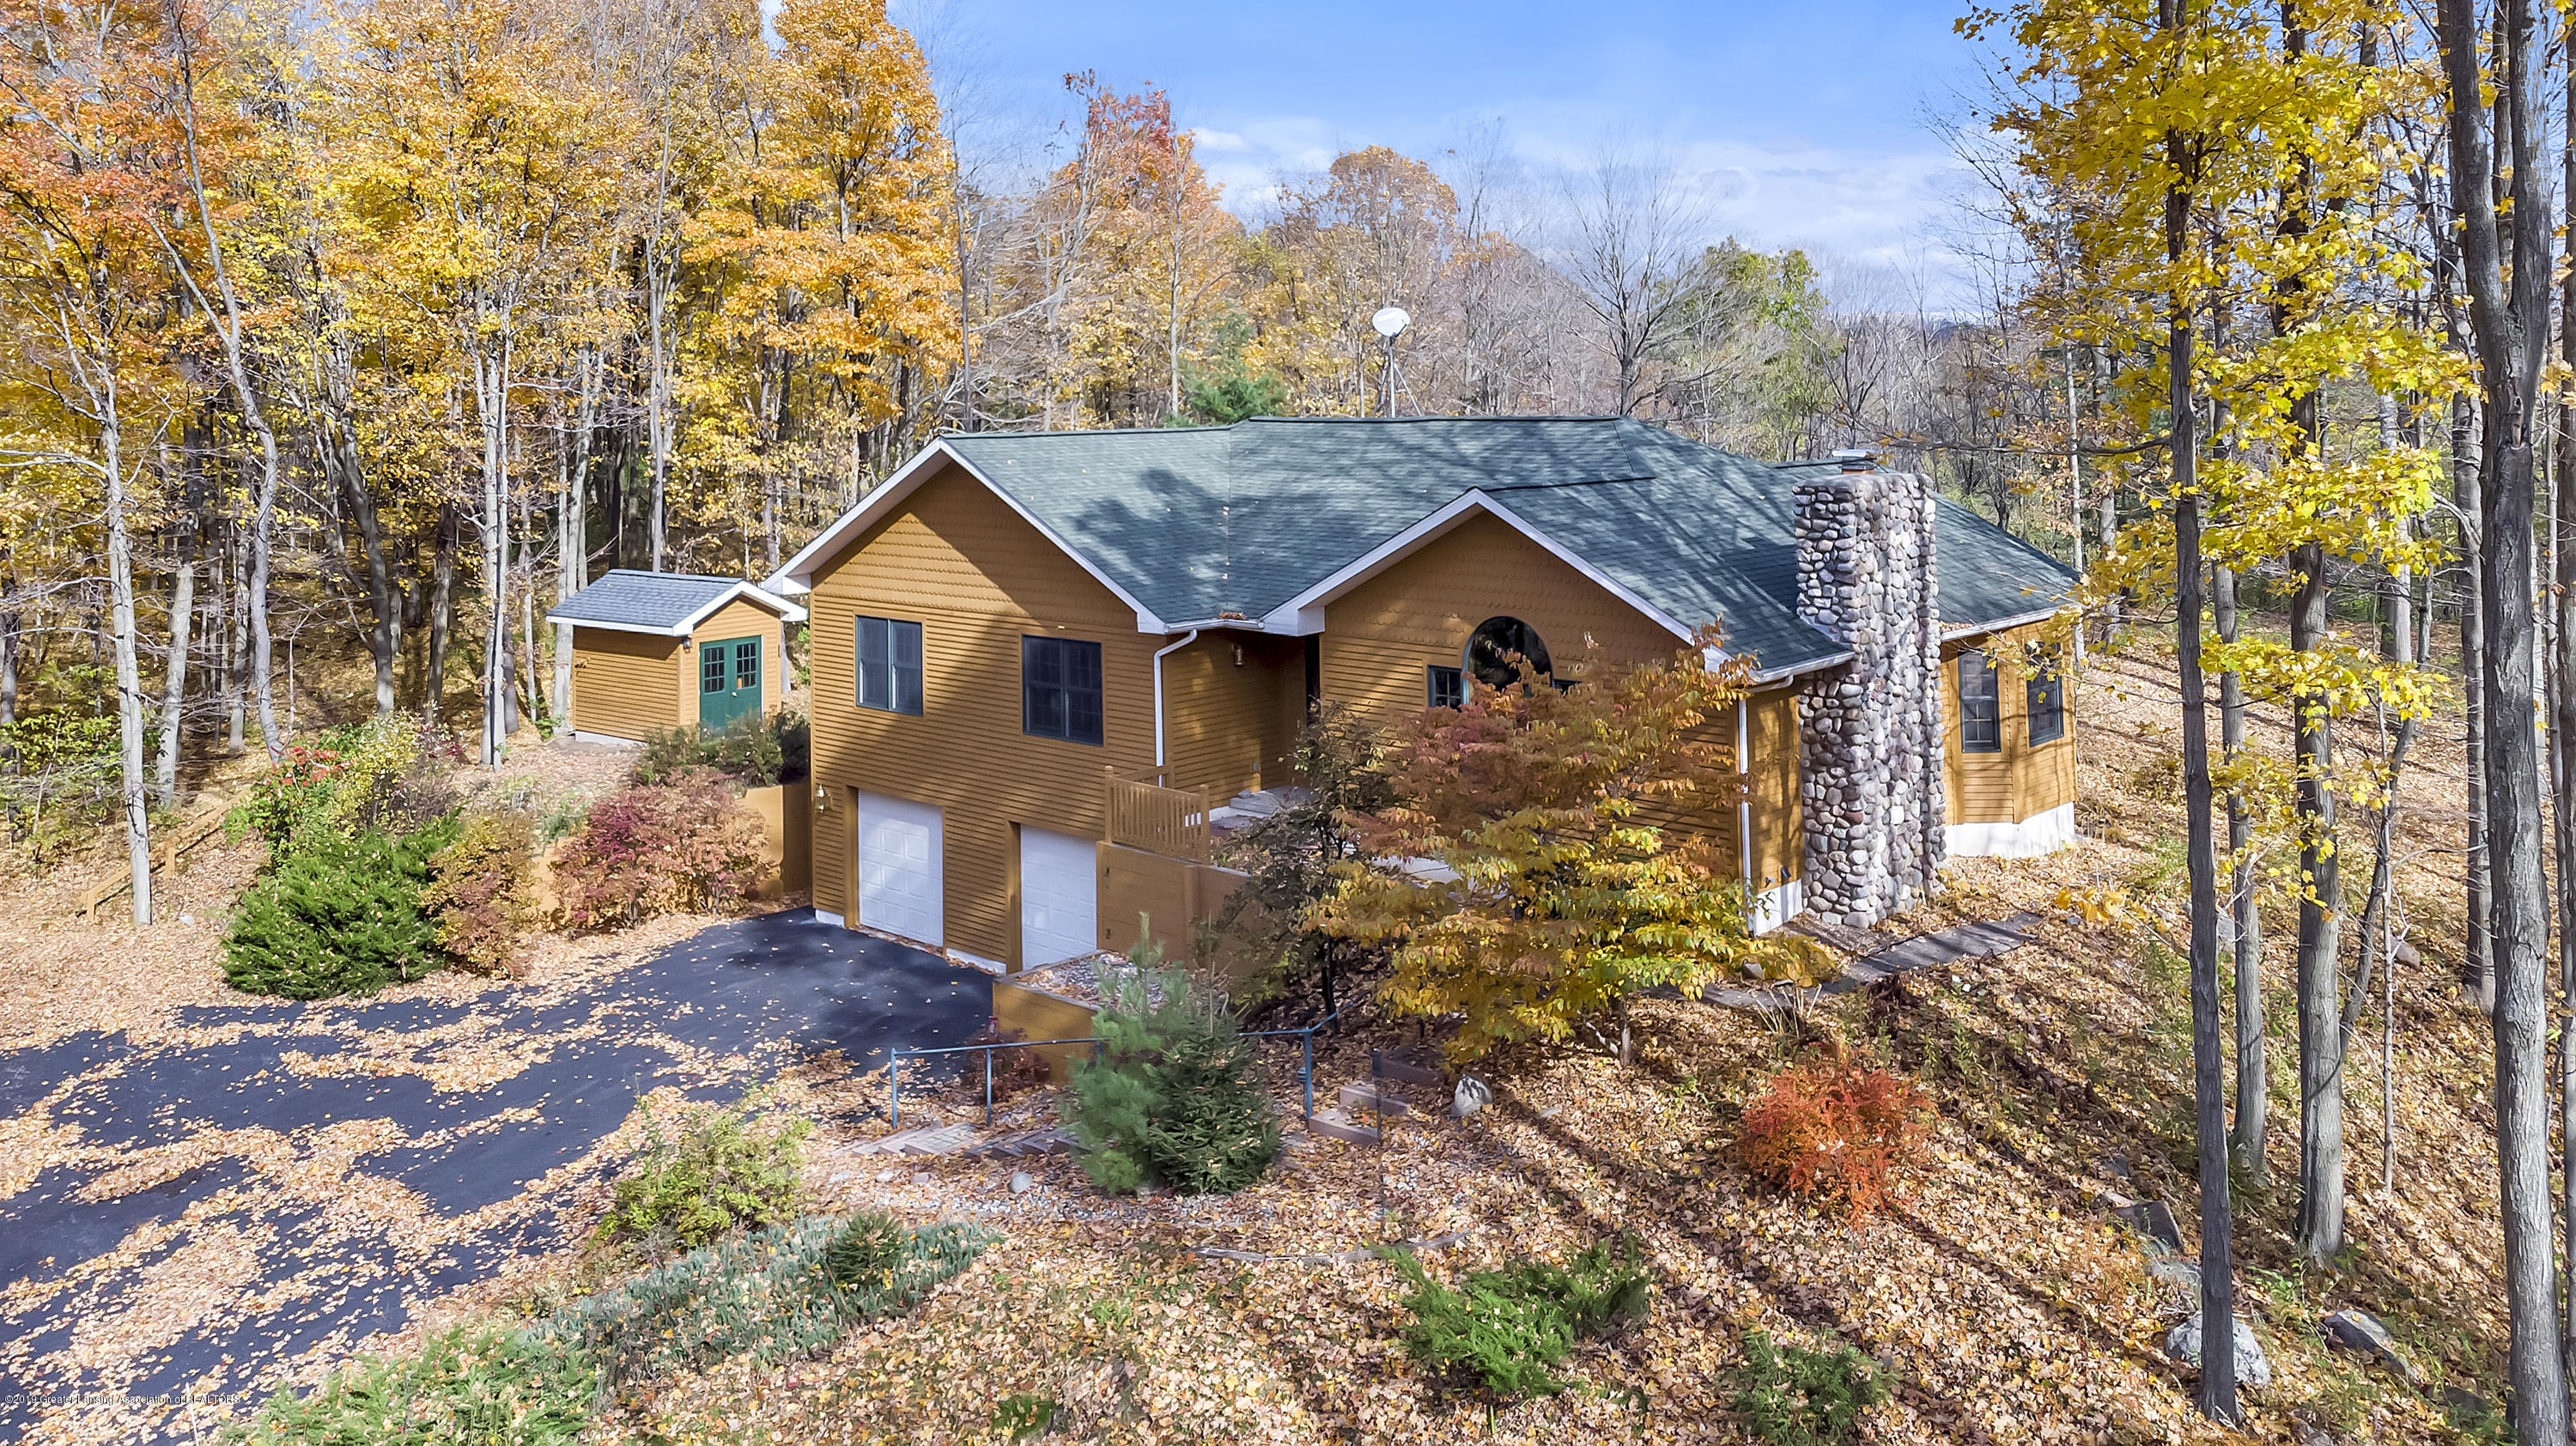 10865 Barnes Rd - 10865-Barnes-Rd-WindowStill-Real-Estate- - 5